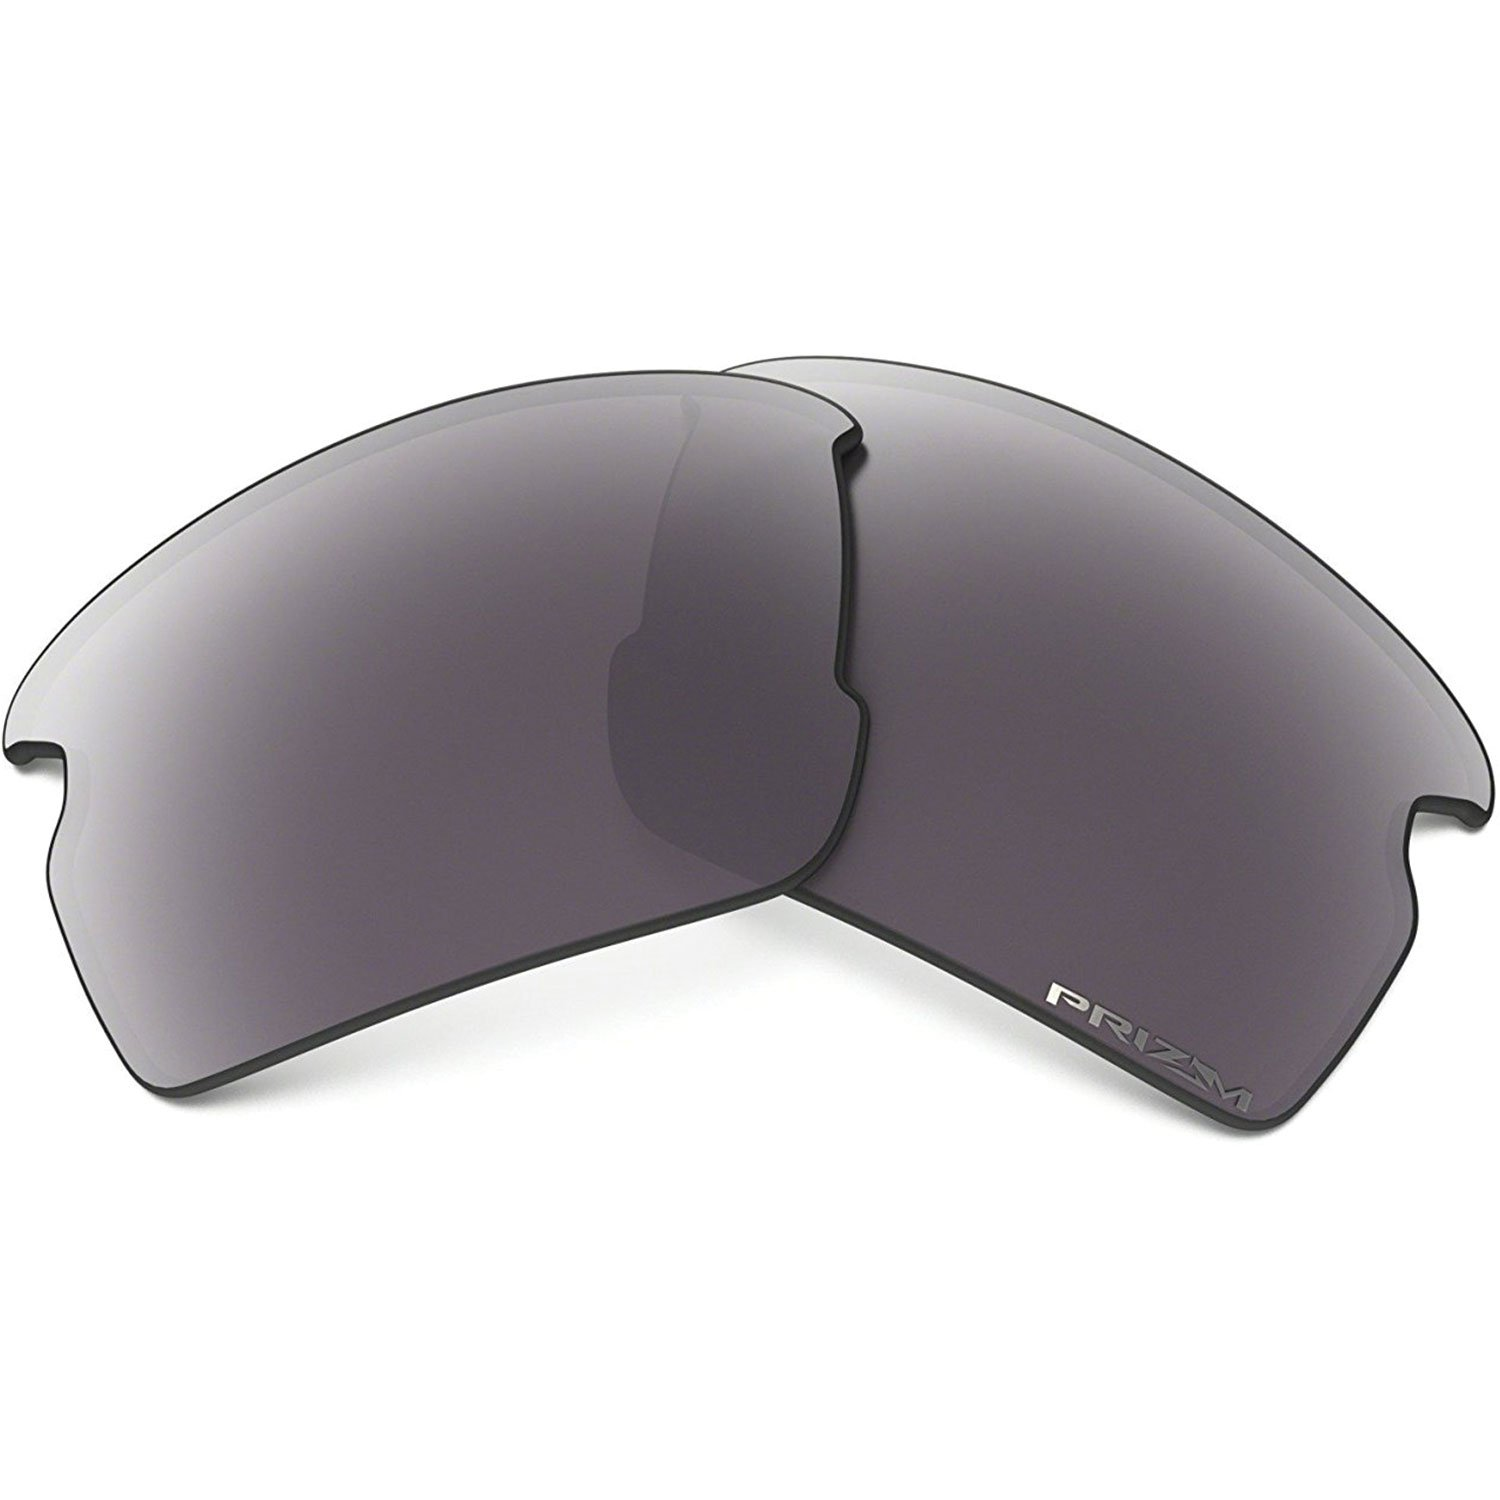 Oakley Flak 2.0 Prizm Replacement Lens Daily Polarized, One Size by Oakley